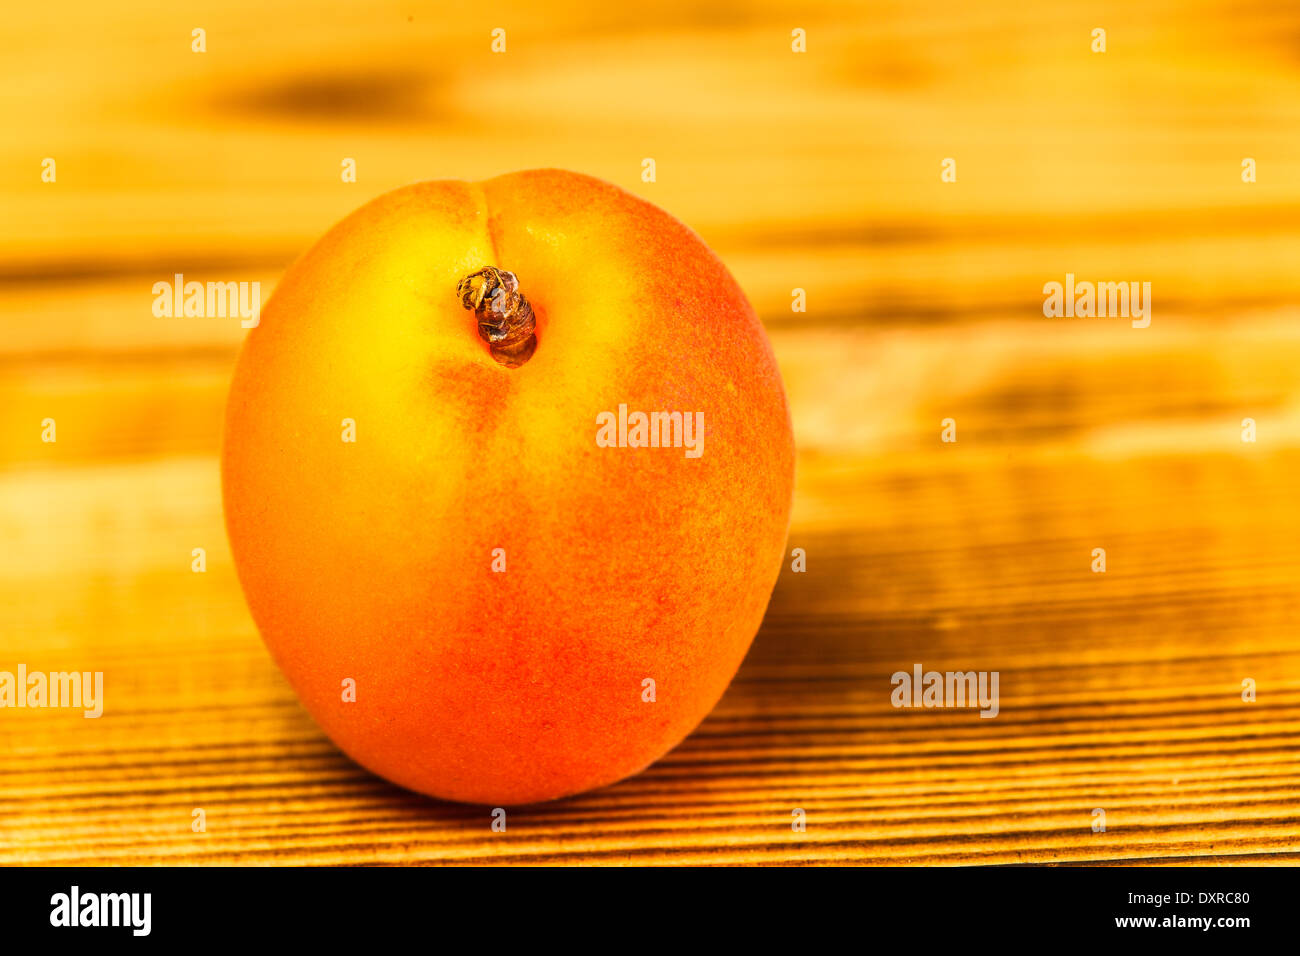 Apricot on wooden table, close-up - Stock Image